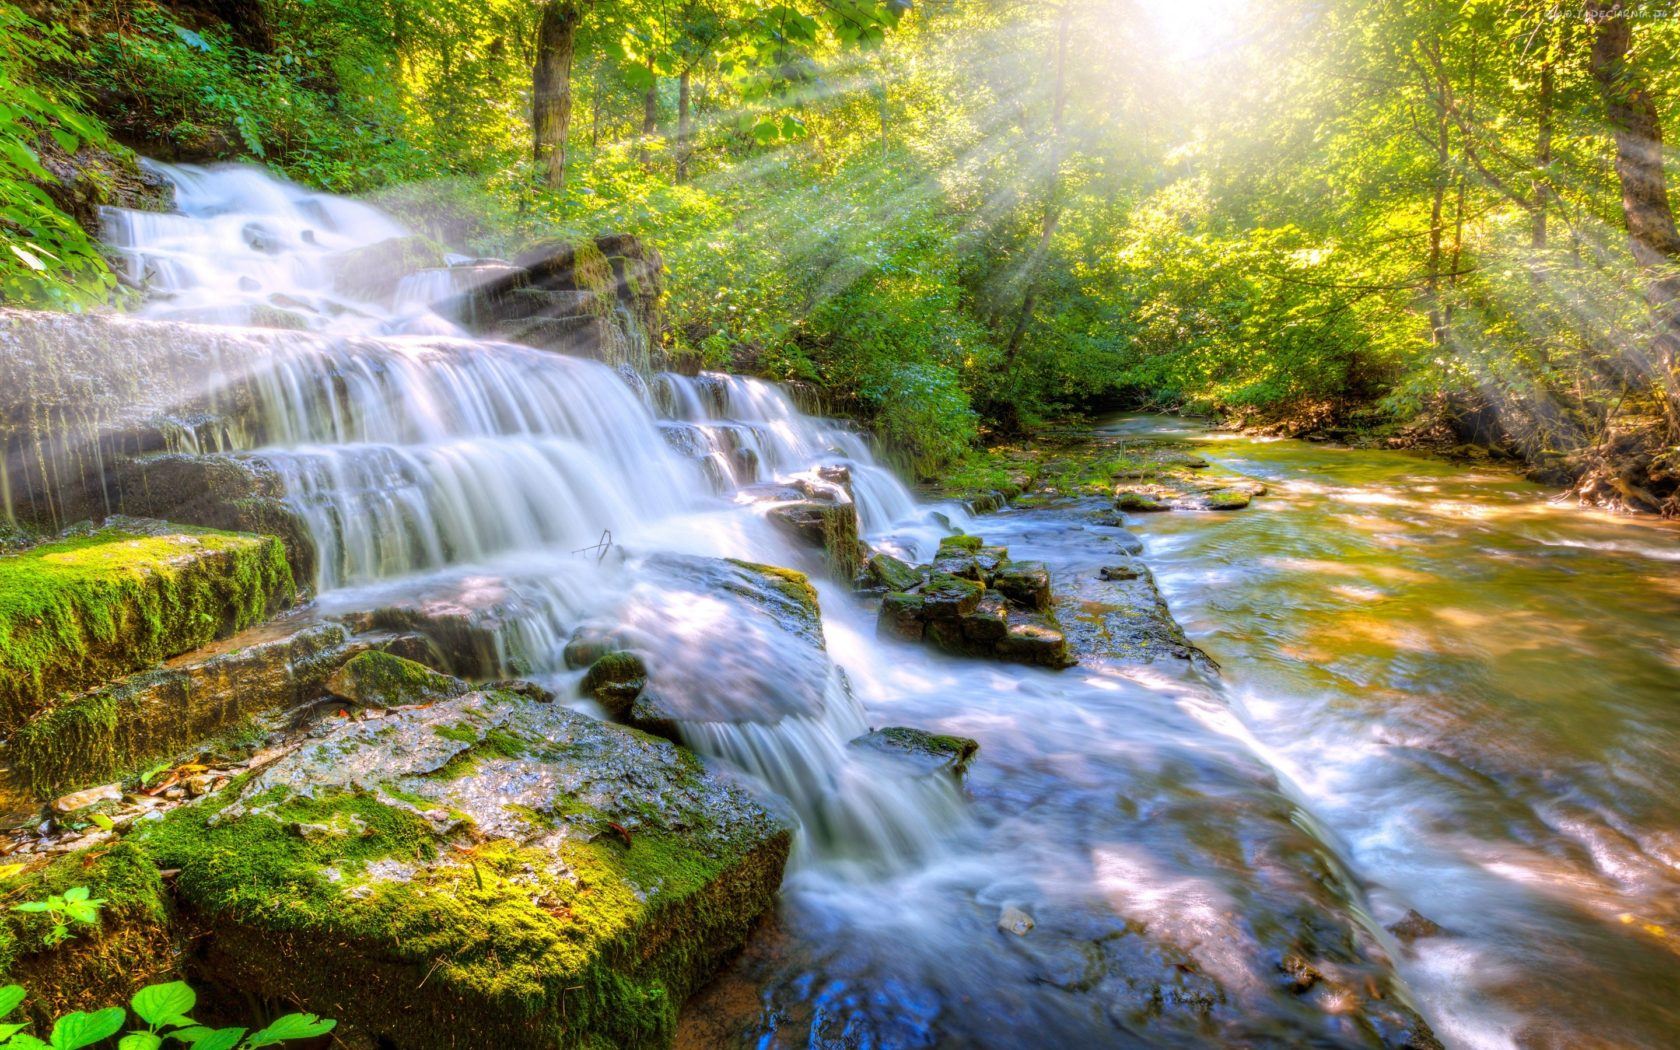 Fall Wallpapers For Tablet Cascade Waterfall River Stones With Moss Green Sunlight